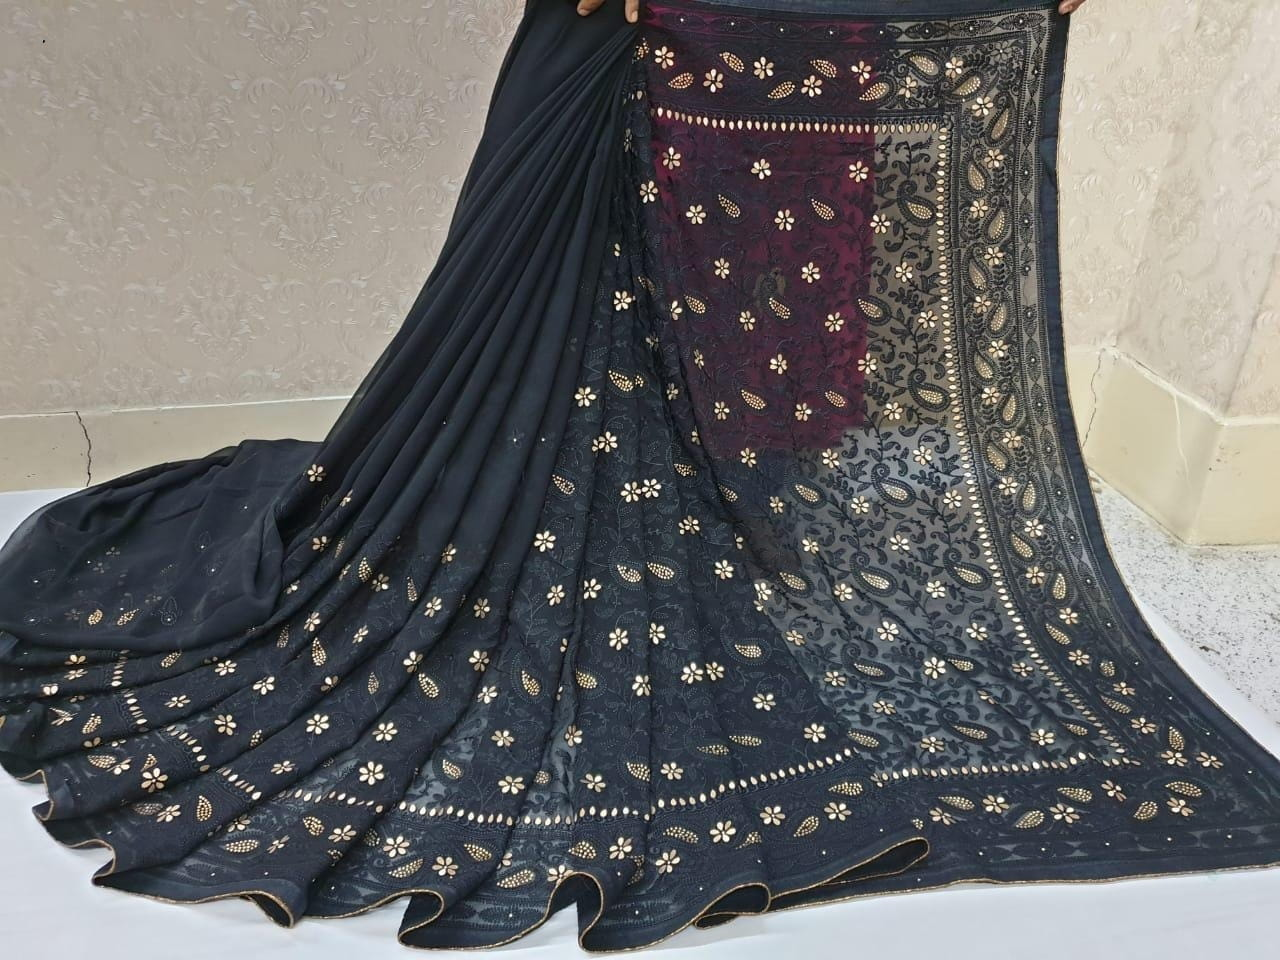 Breath taking Black Color Designer Diamond Chain Embroidered Work Banglori Patta Piping Saree Blouse For Function Wear